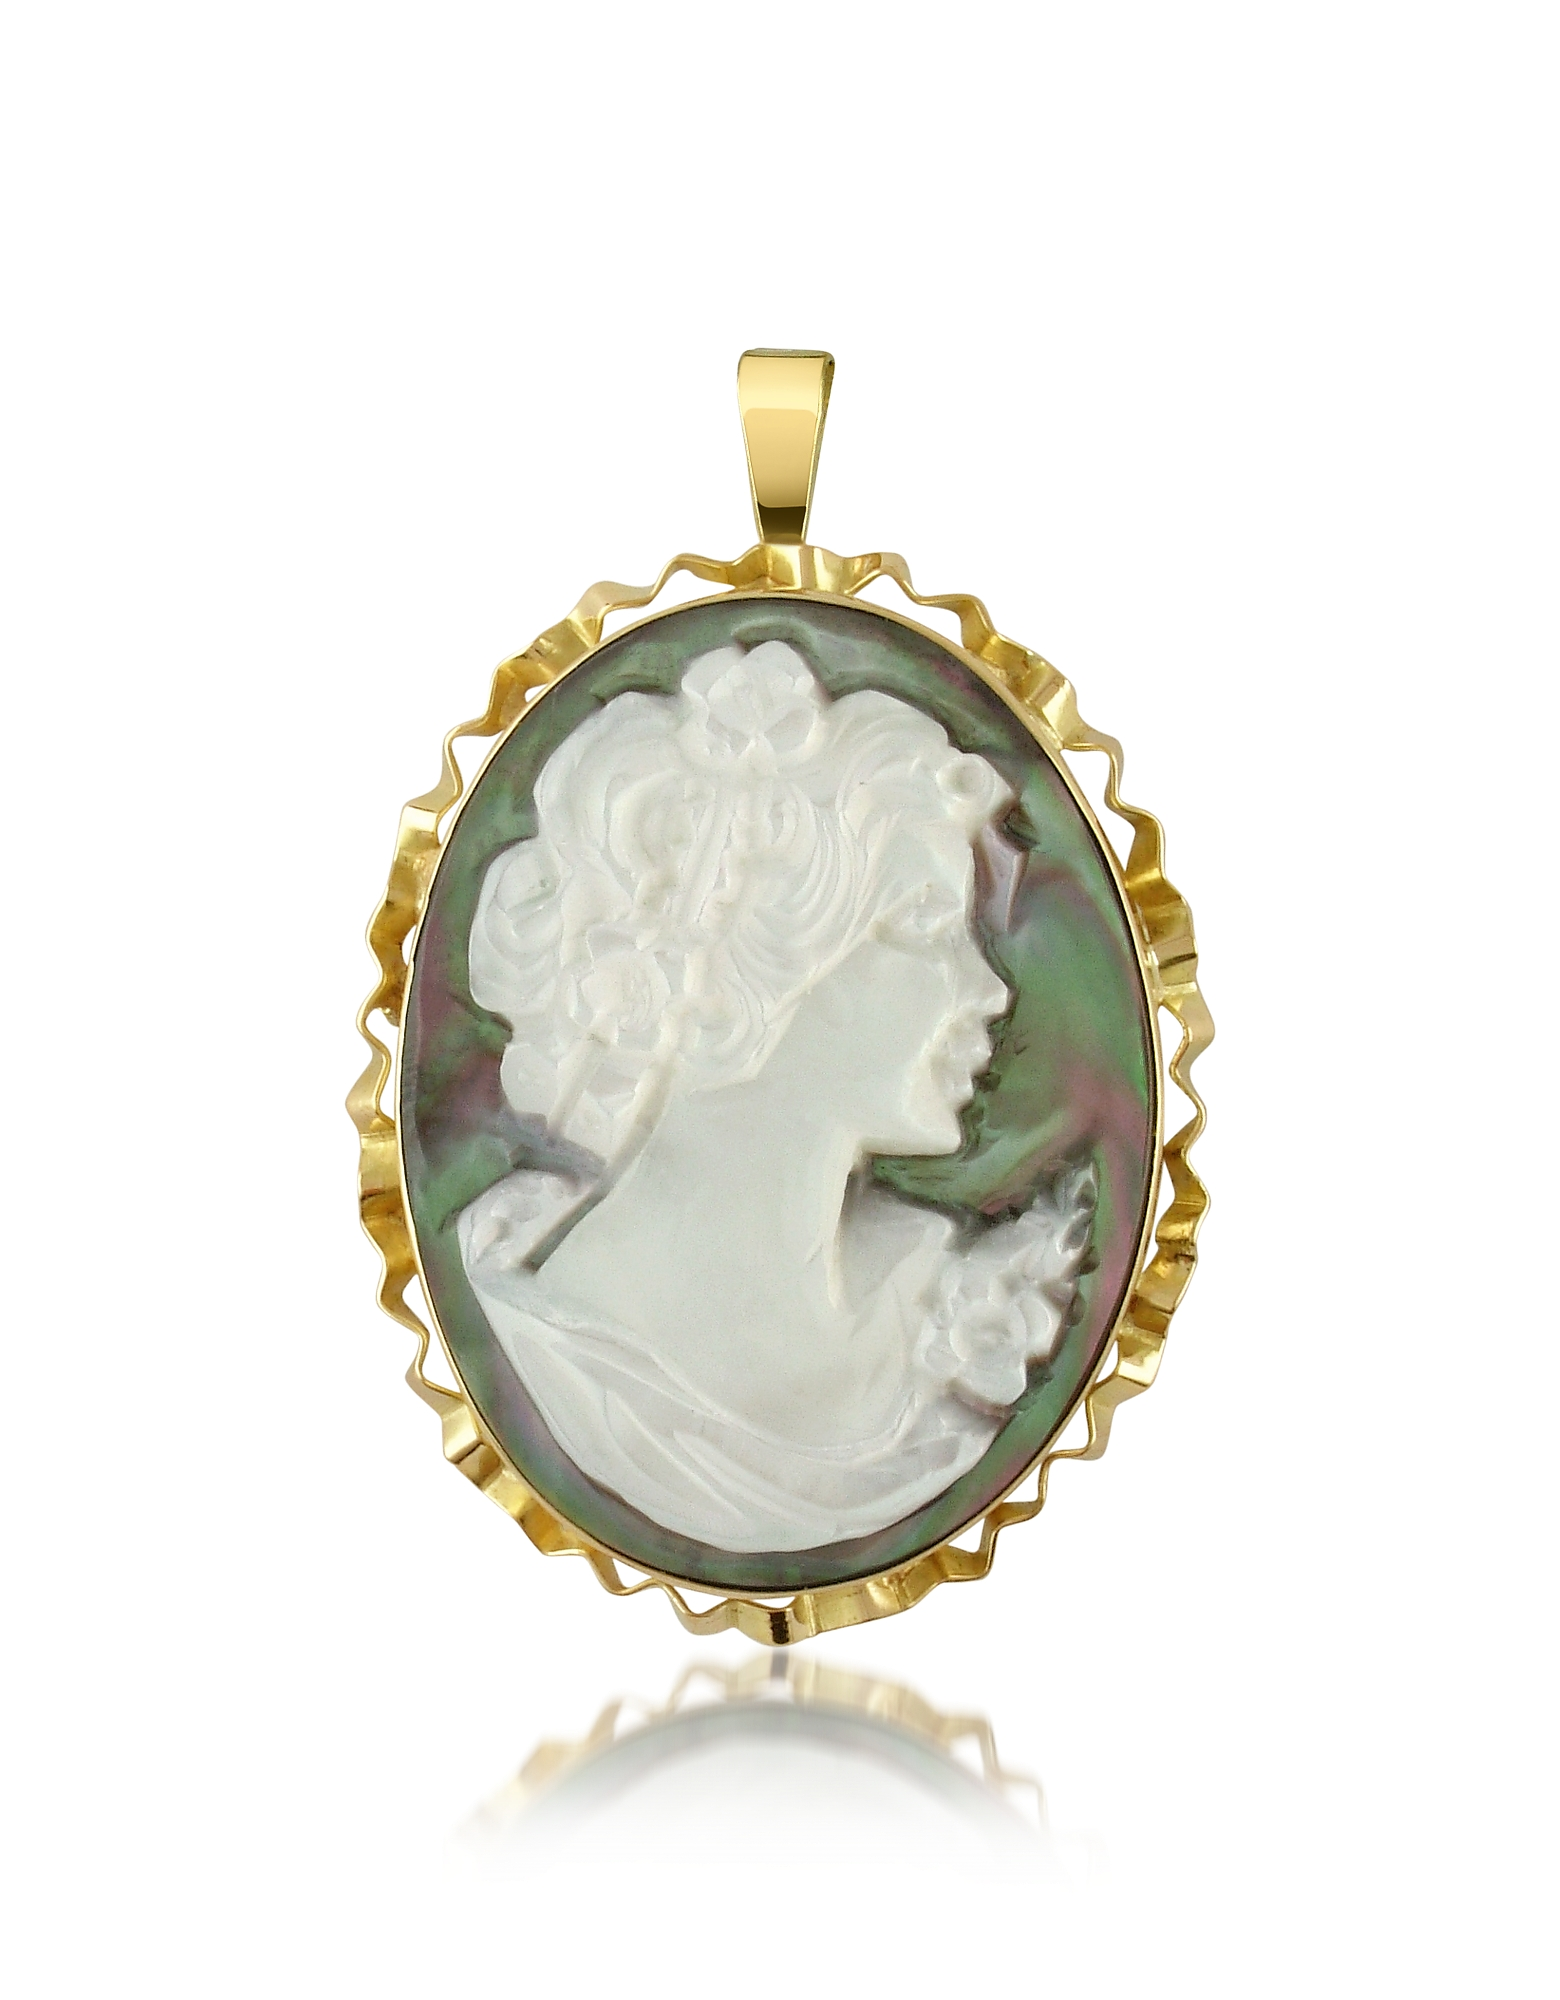 Del Gatto Cameo, Woman Mother of Pearl Cameo Pendant/Pin